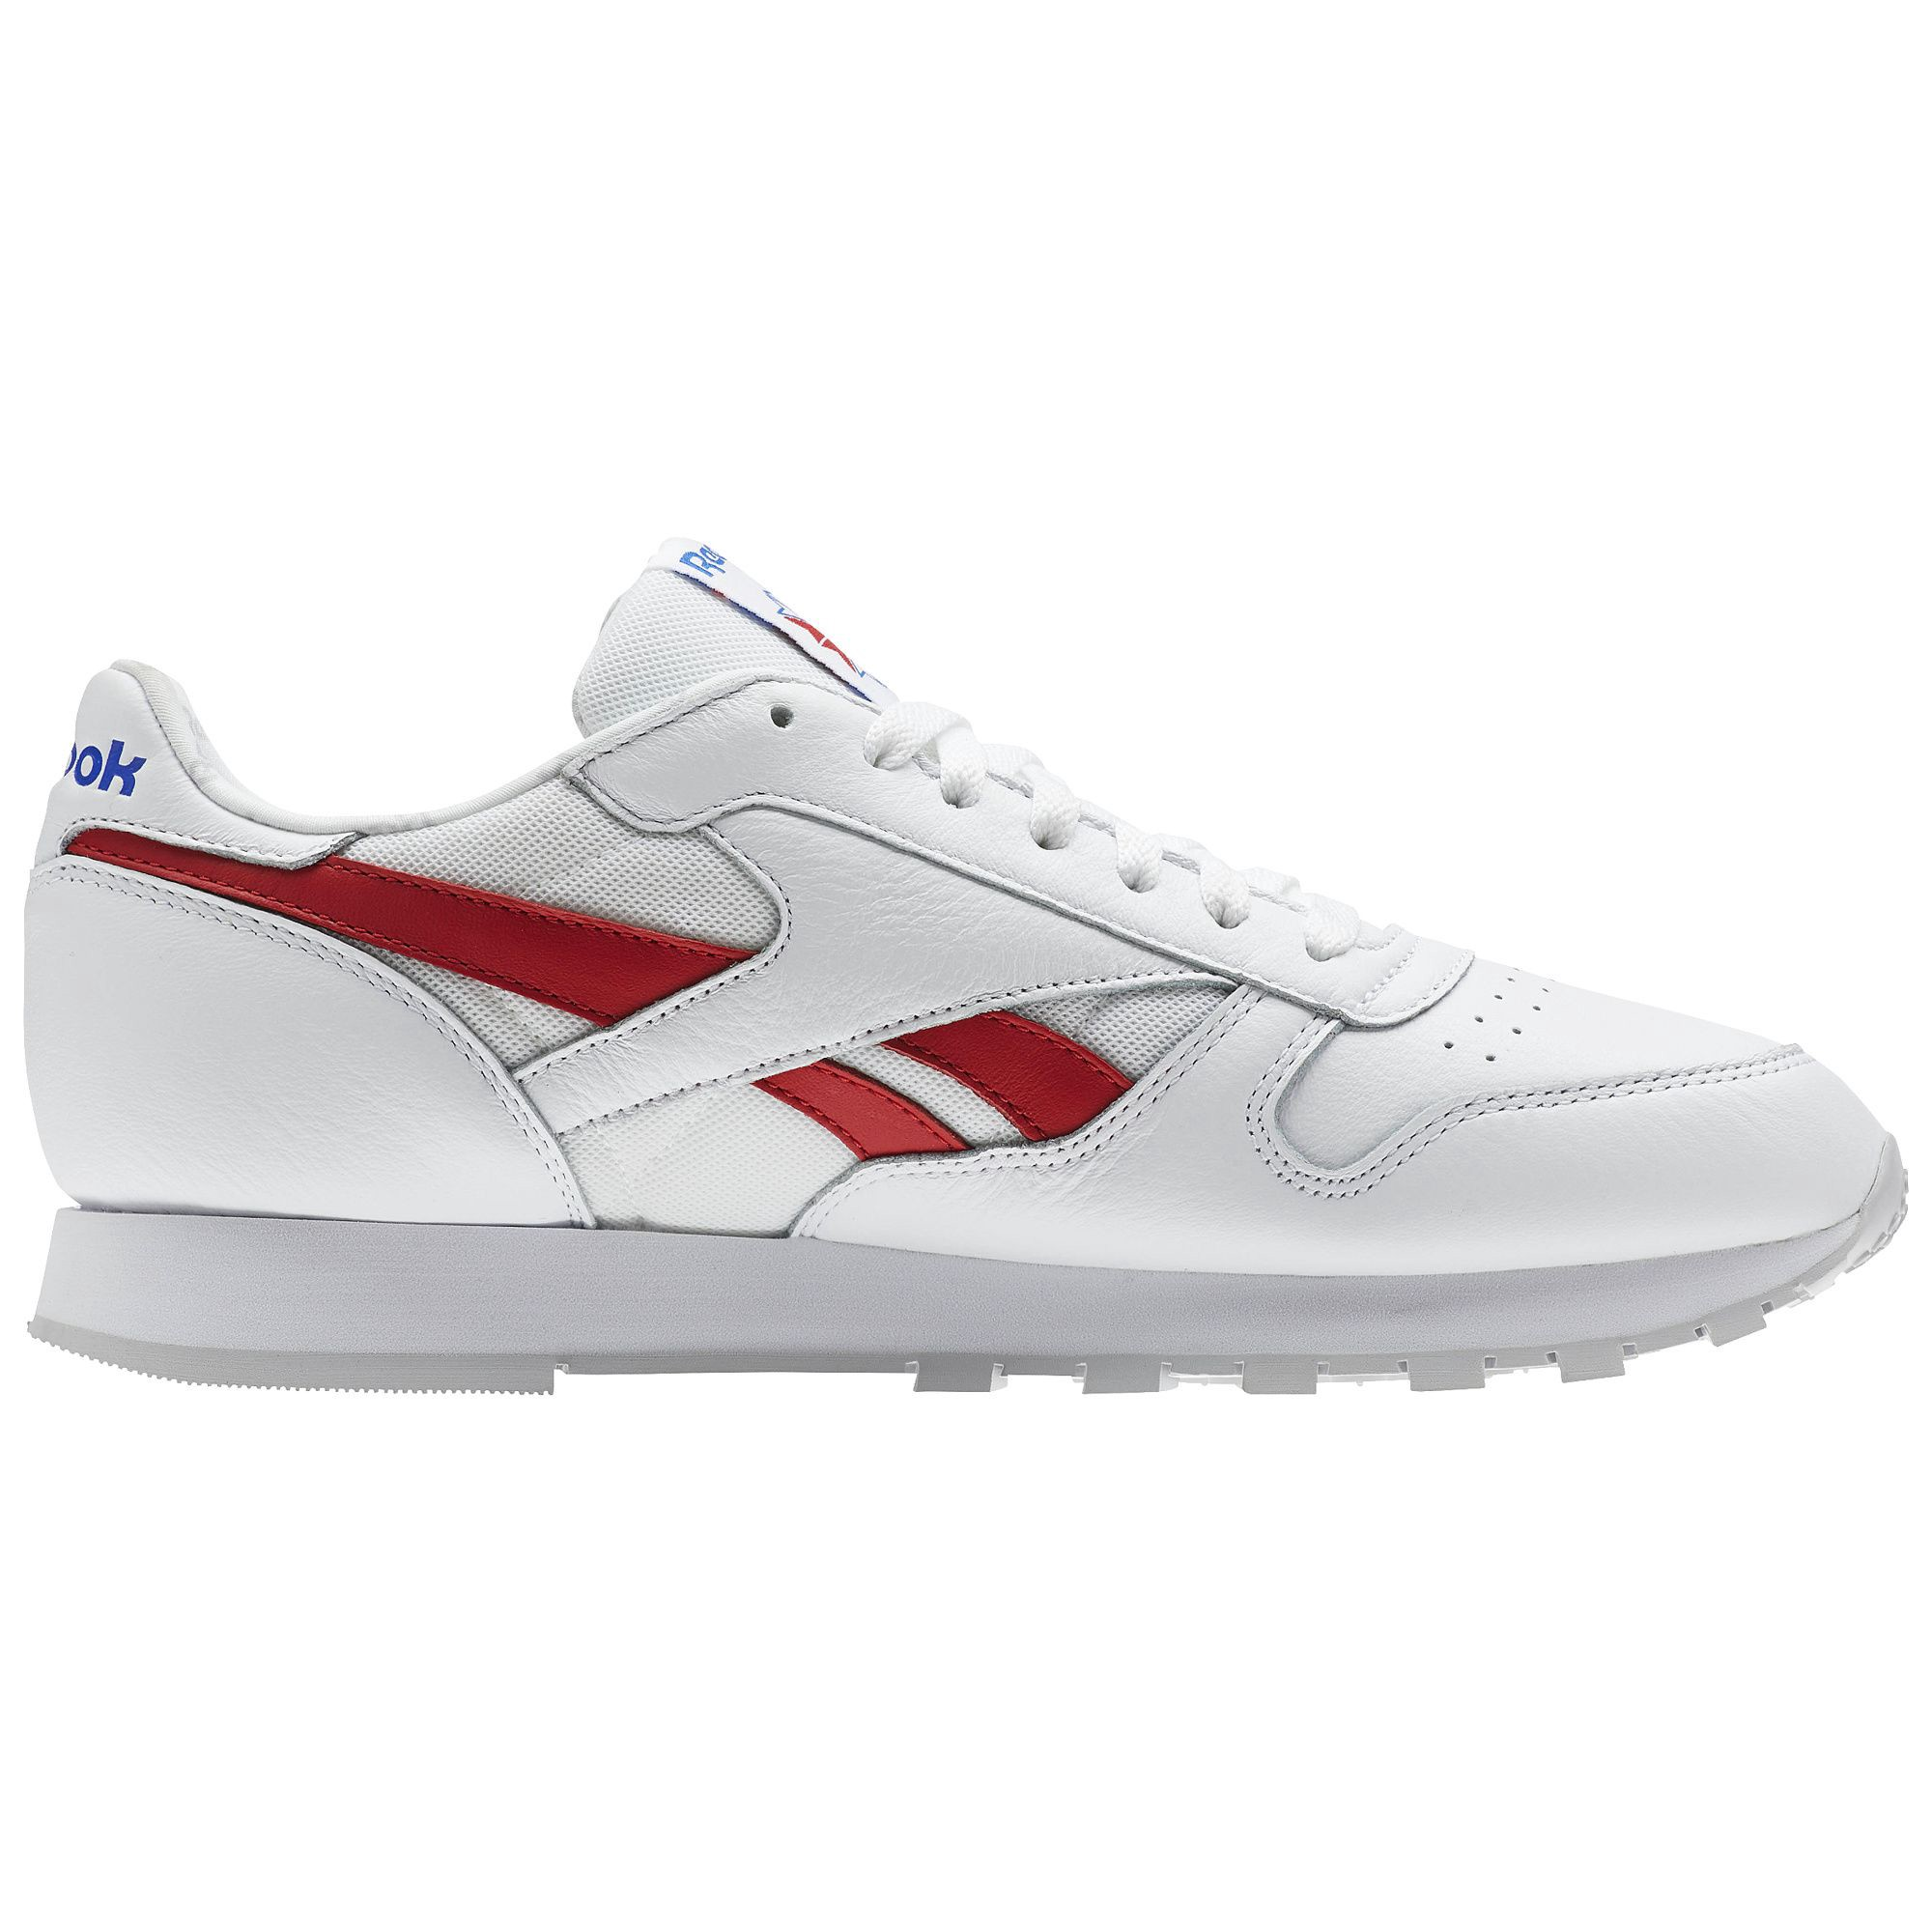 b18a0a730e0 Reebok Classic Leather So - White   Vital Blue Primal Red Light Grey  Heather Solid 10.5